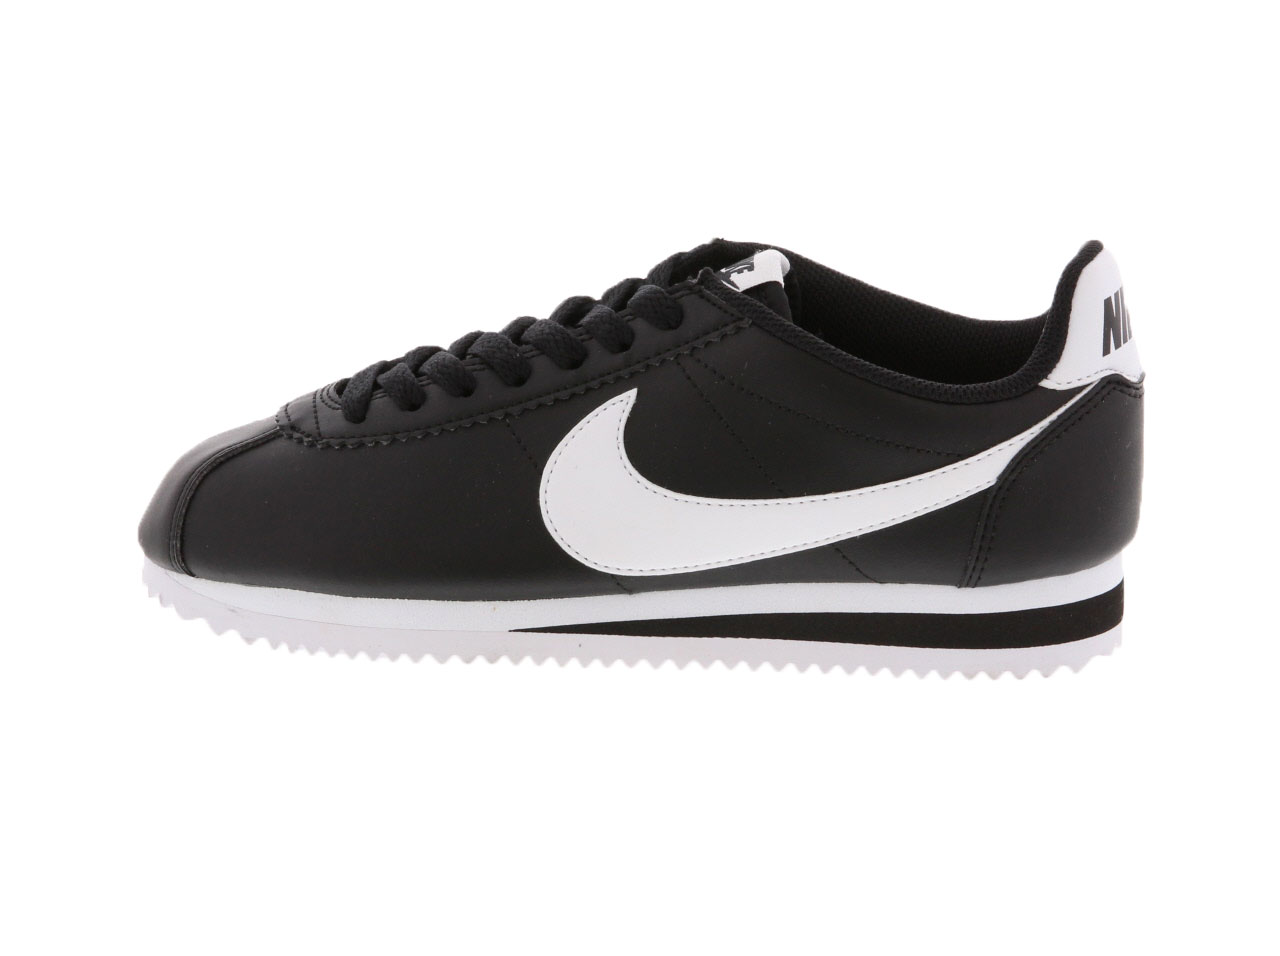 レディース靴, スニーカー 10OFF!NIKE WMNS CLASSIC CORTEZ LEATHER(807471-010)